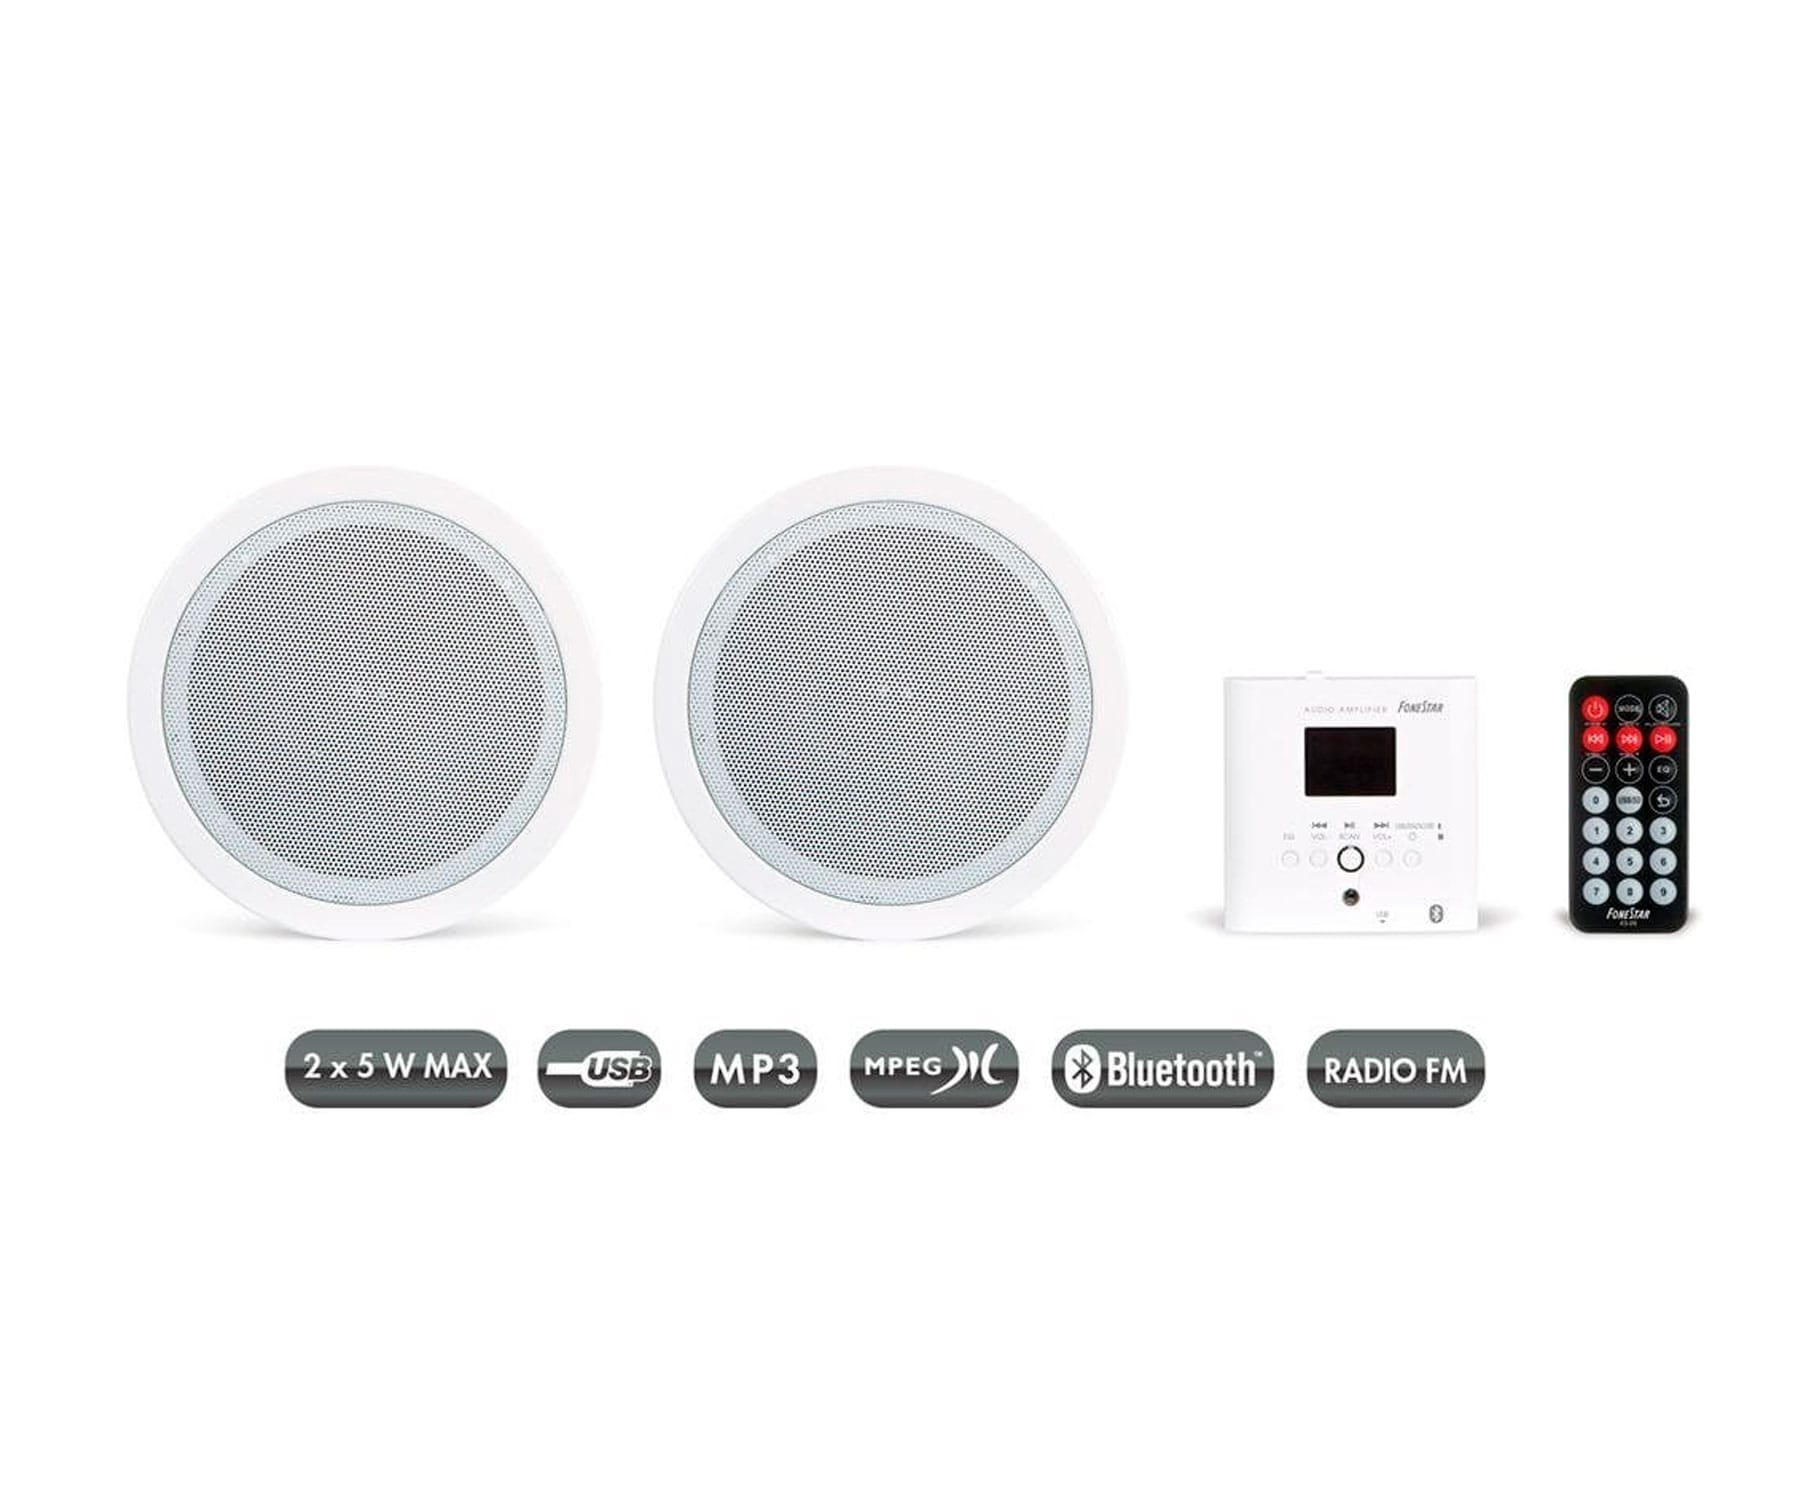 FONESTAR KS-06 BLANCO PAREJA ALTAVOCES INALÁMBRICOS PARED O TECHO CON MANDO A DISTANCIA Y RECEPTOR BLUETOOTH